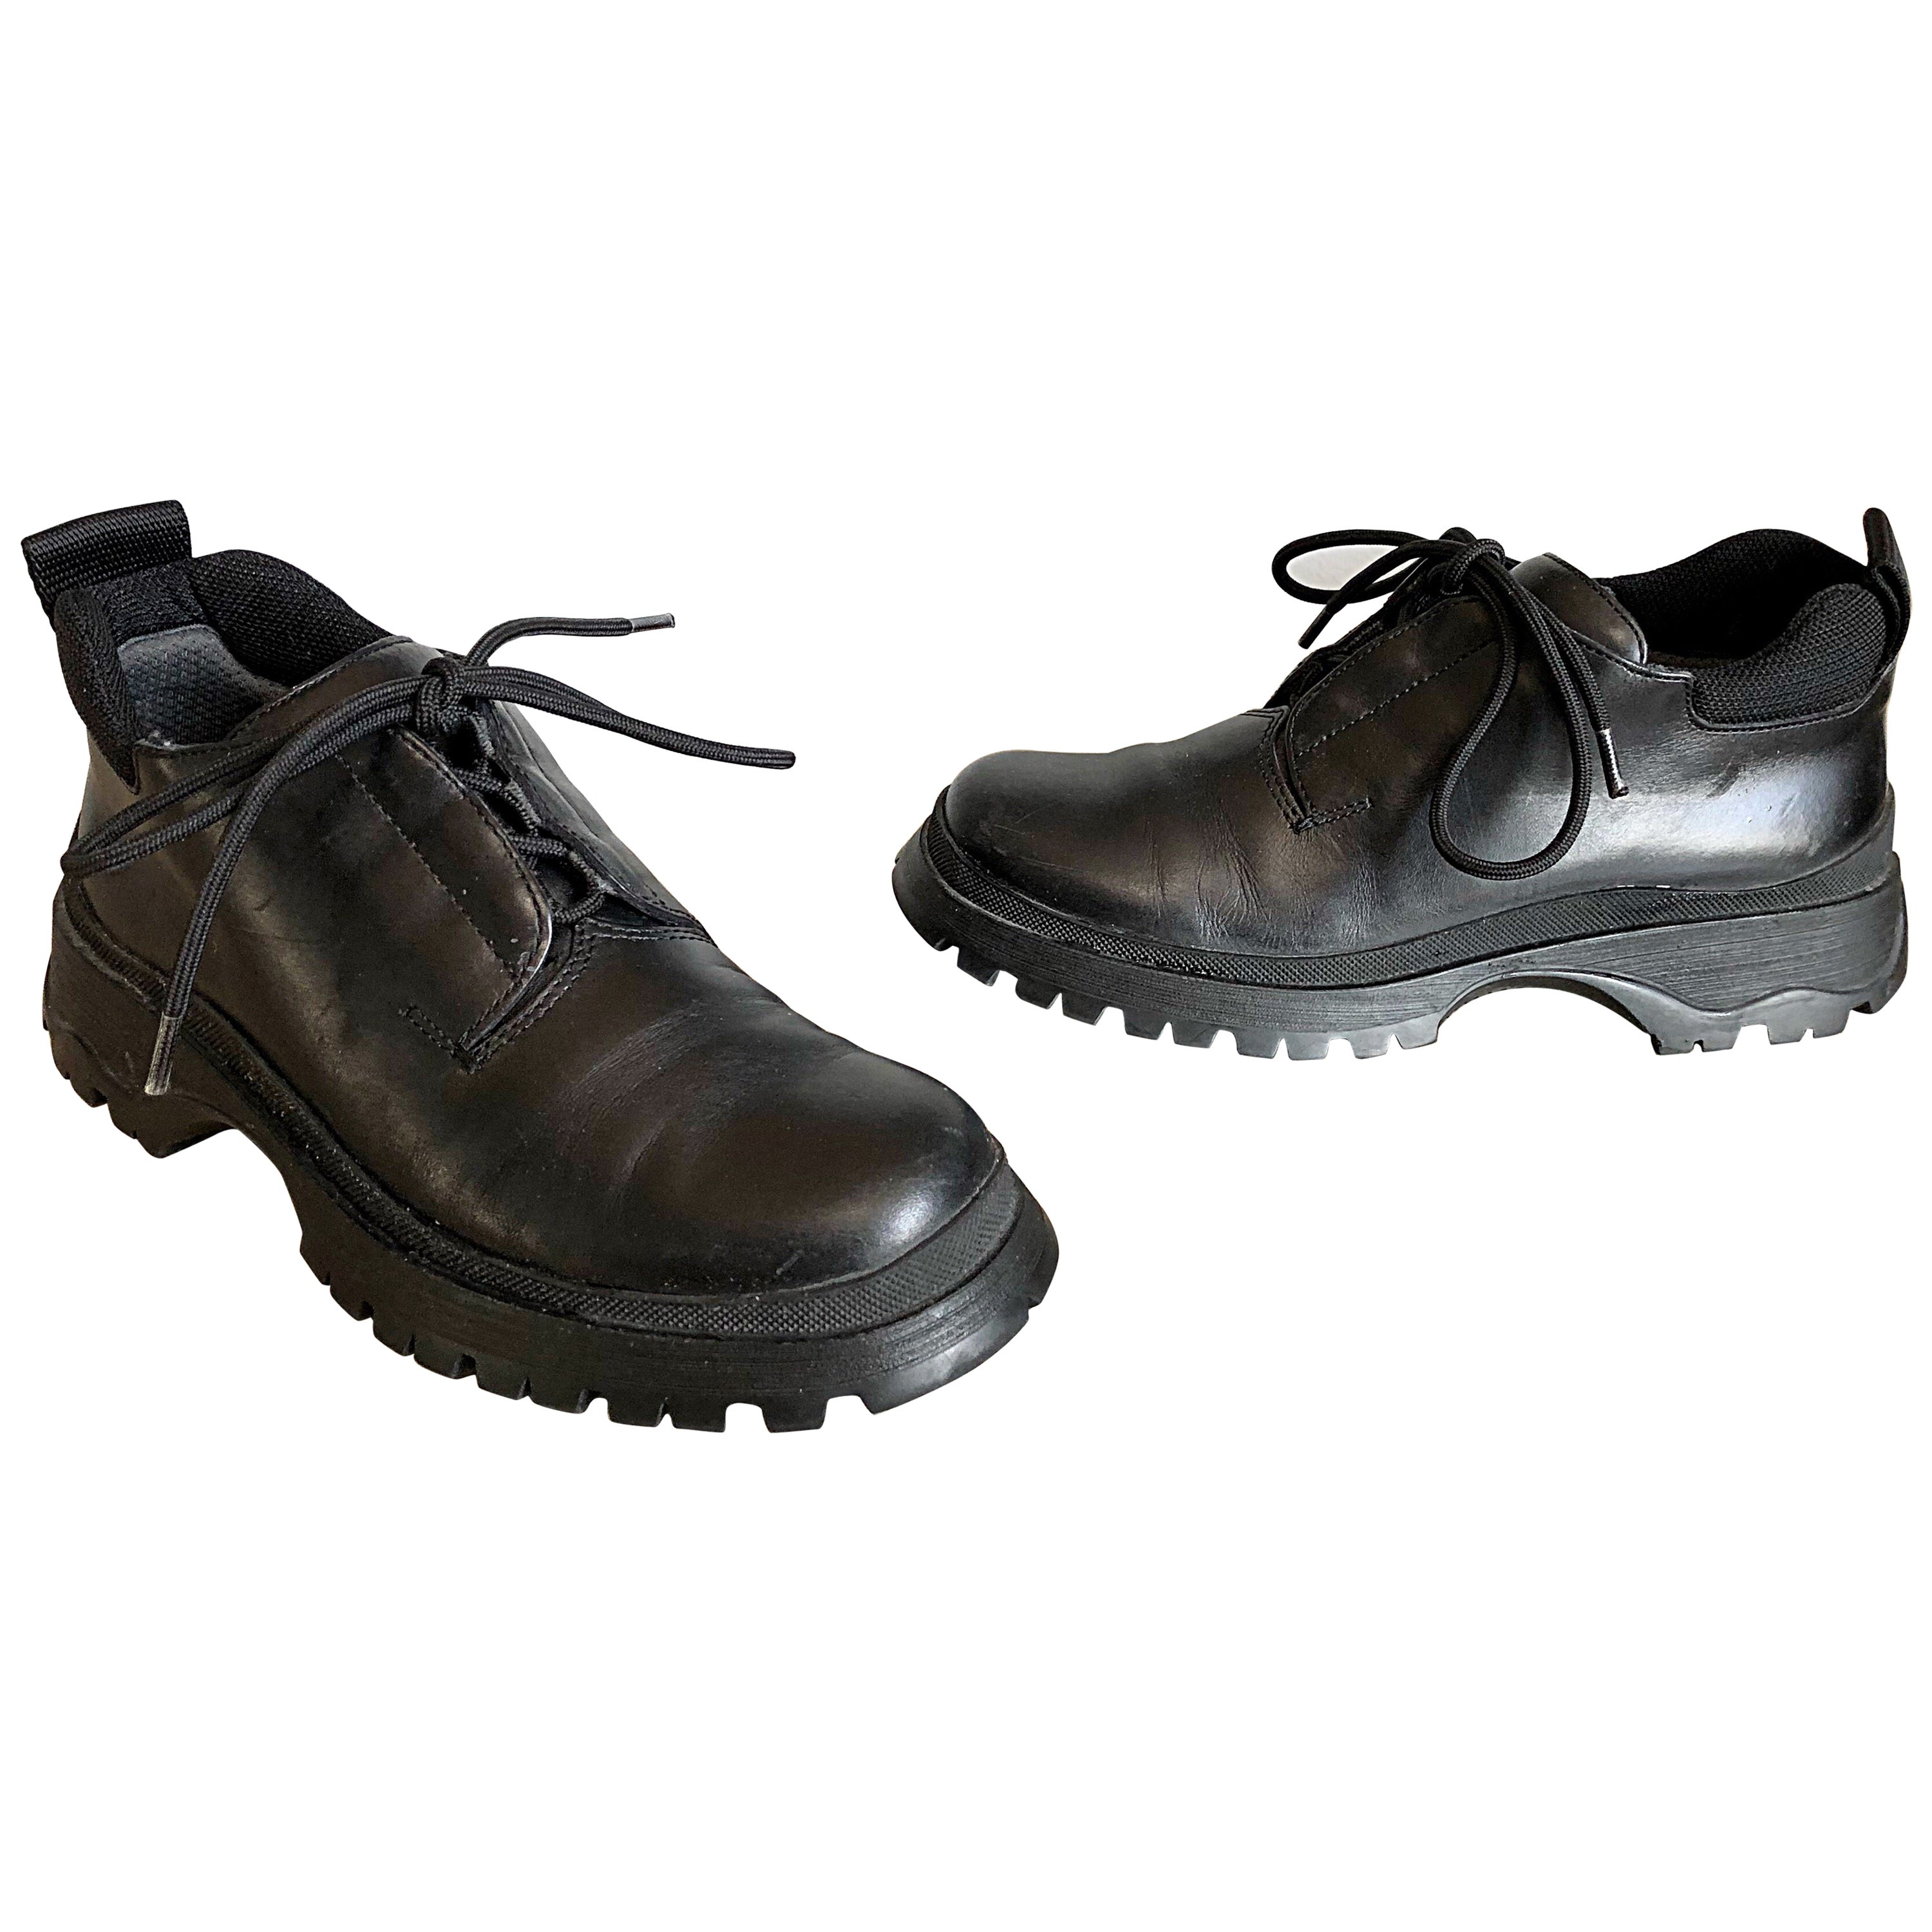 New 1990s Prada Black Leather Size 37.5 / 7.5 Chunky Vintage Flat Ankle Boots